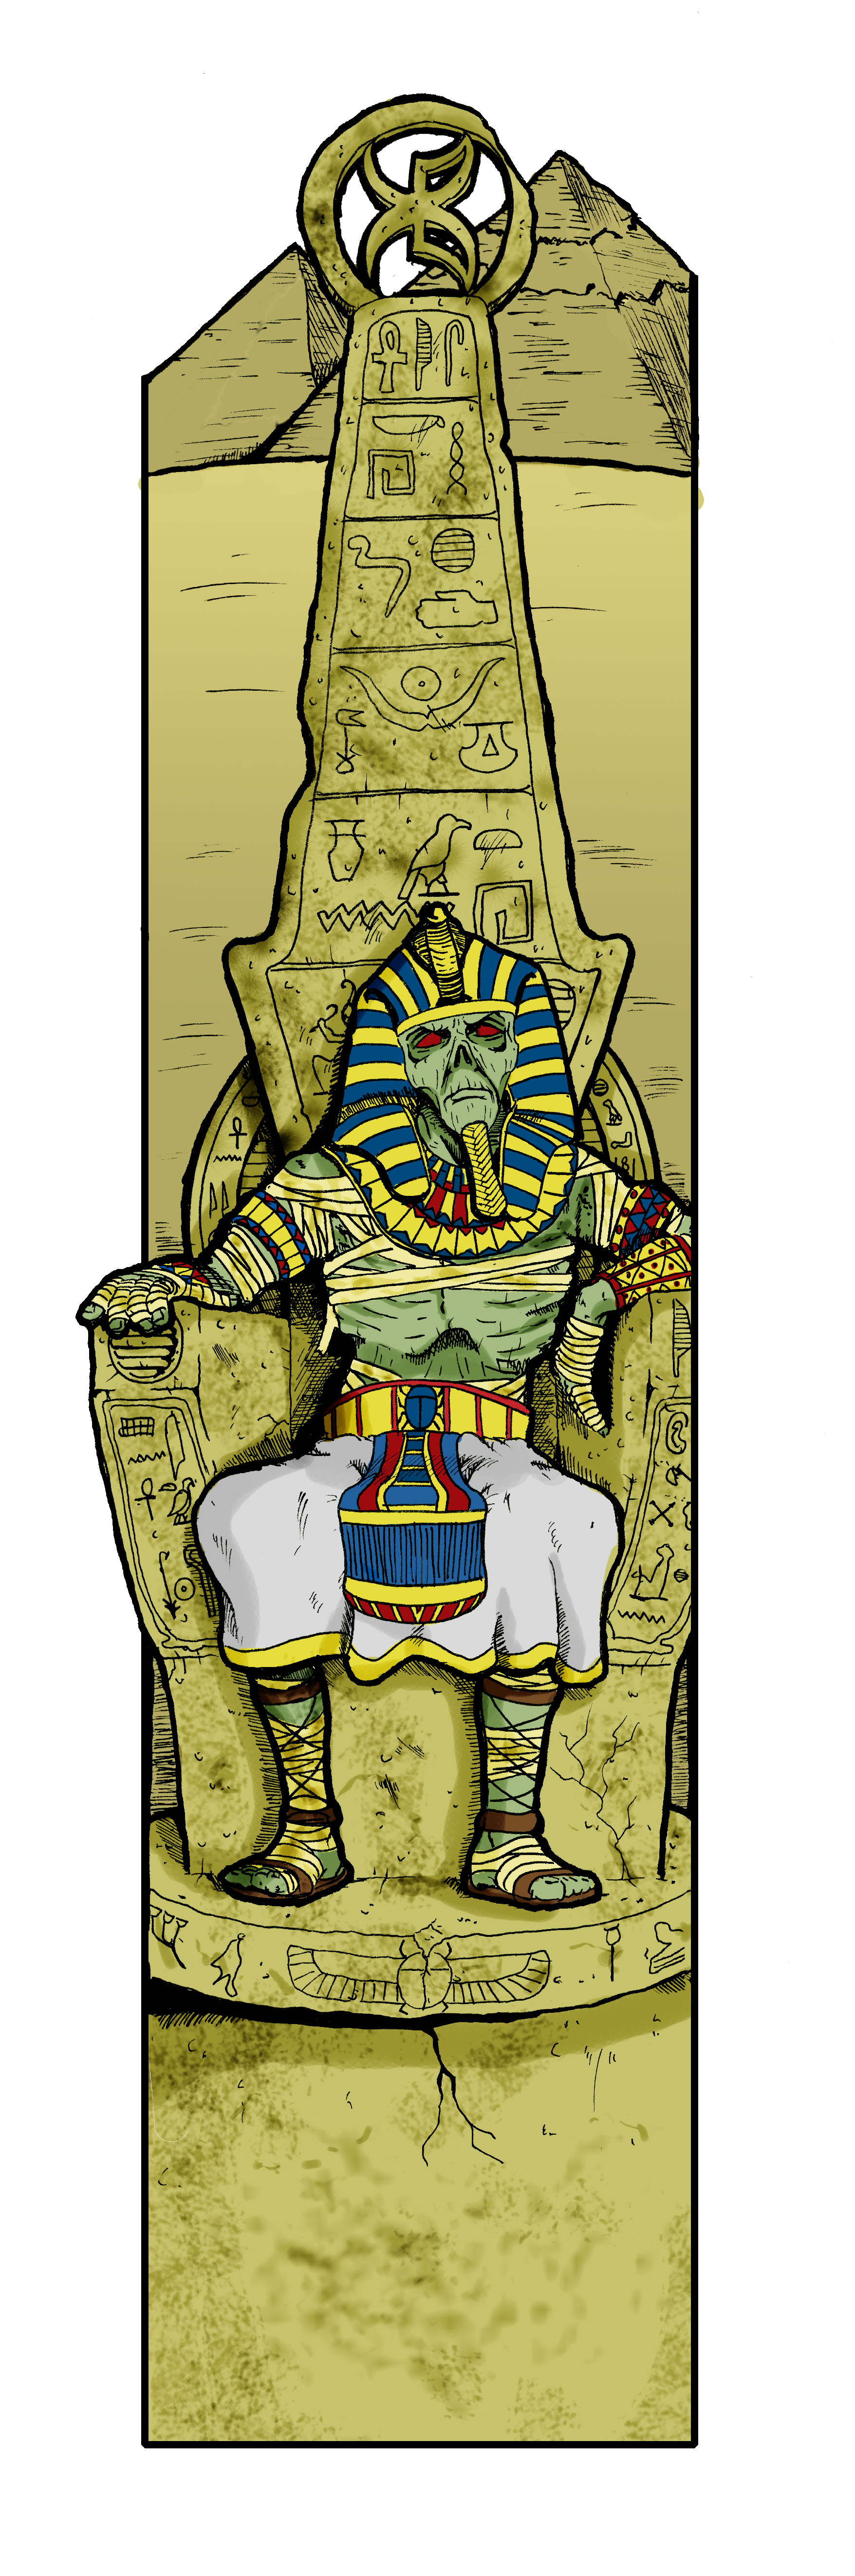 Mummy King by Kyohazard